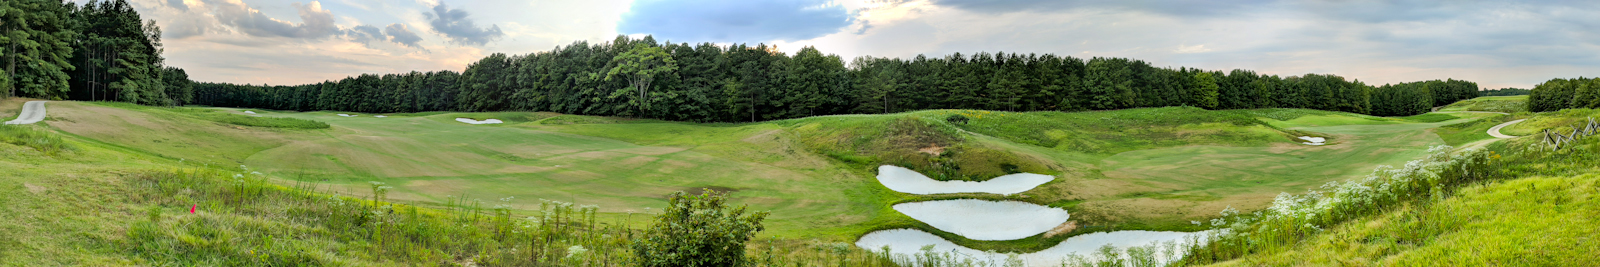 Royal_New_Kent_Gof_Club-Course_by_Terri_Aigner-63-of-74